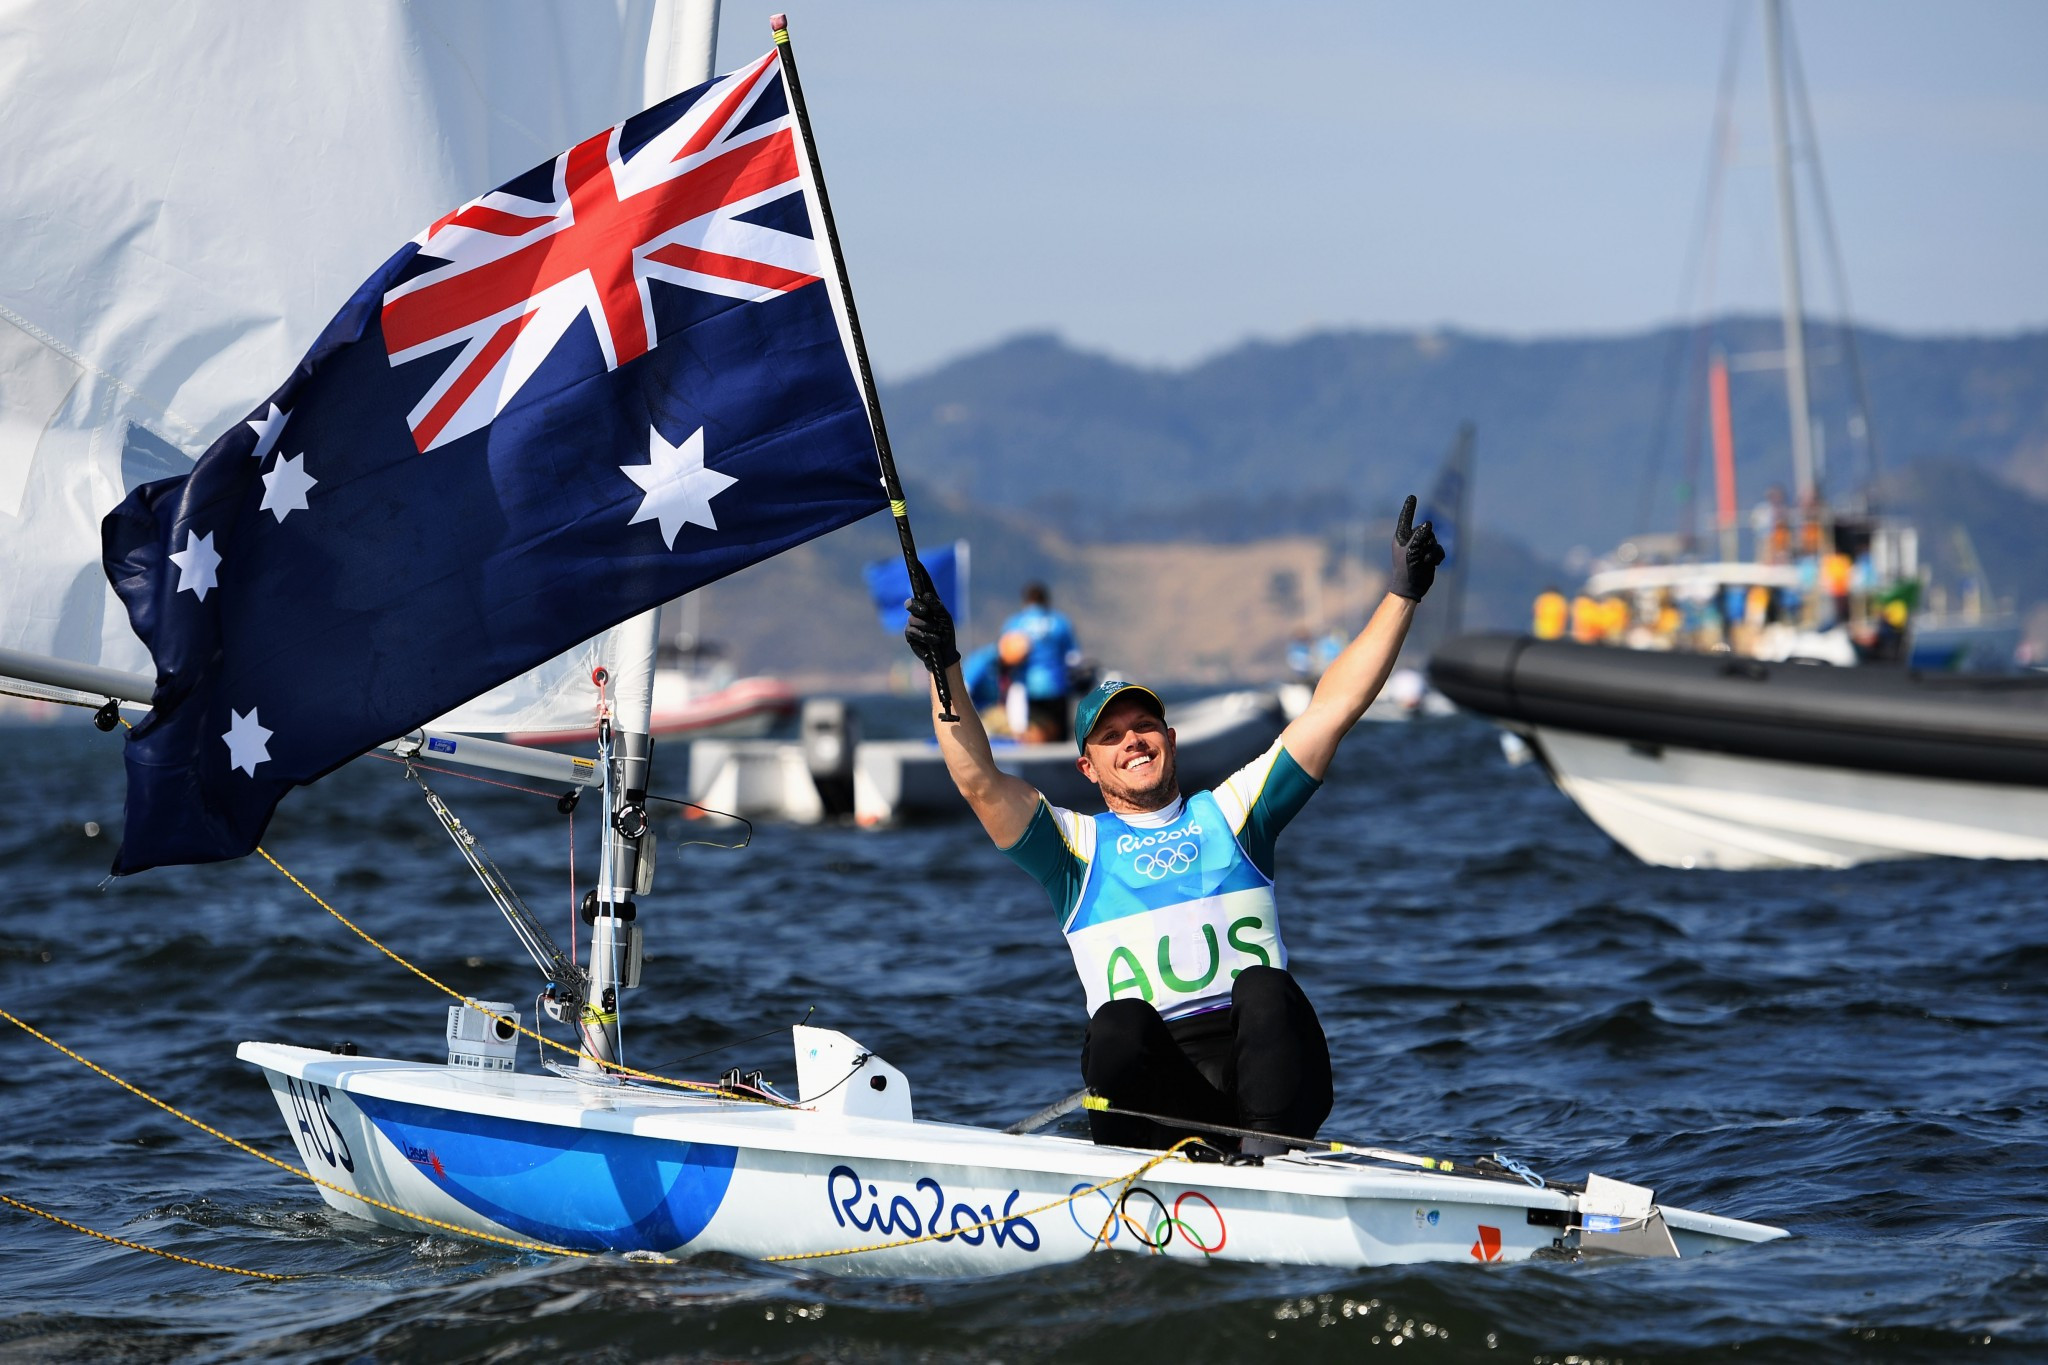 Olympic champions start well at 2018 World Sailing Championships test event in Aarhus